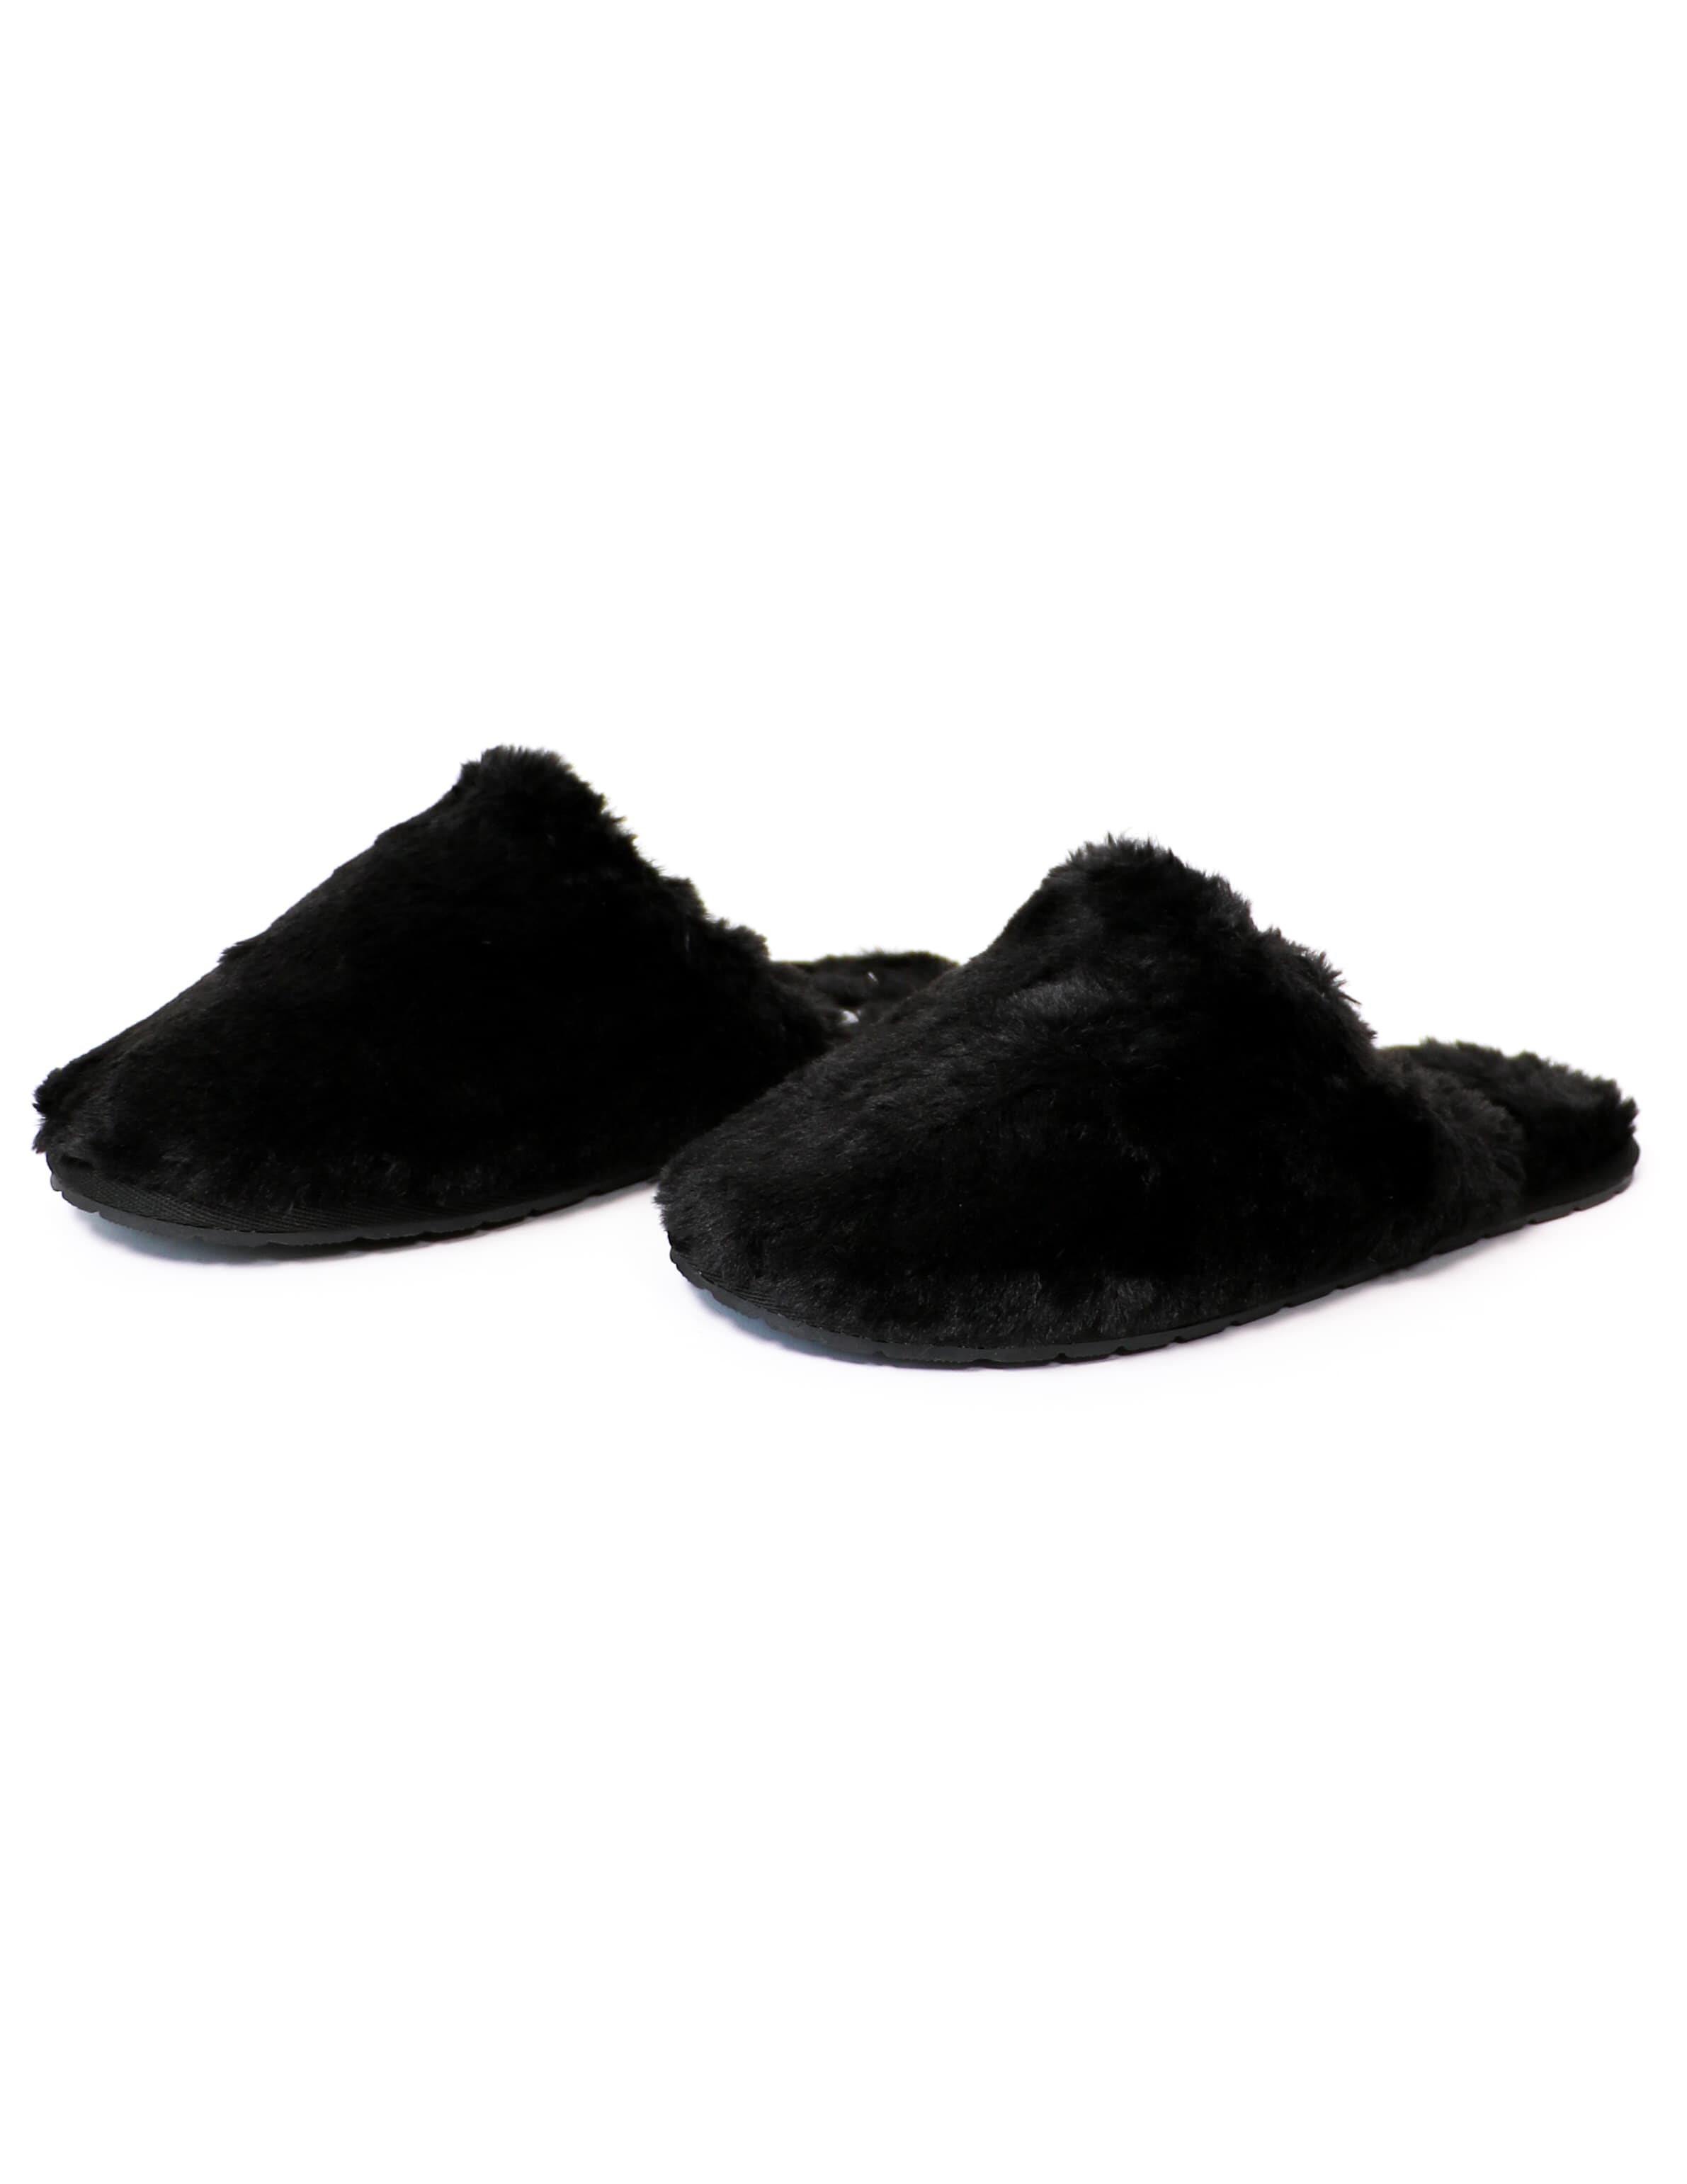 Closed toe faux fur fuzzy wuzzy slippers on white background